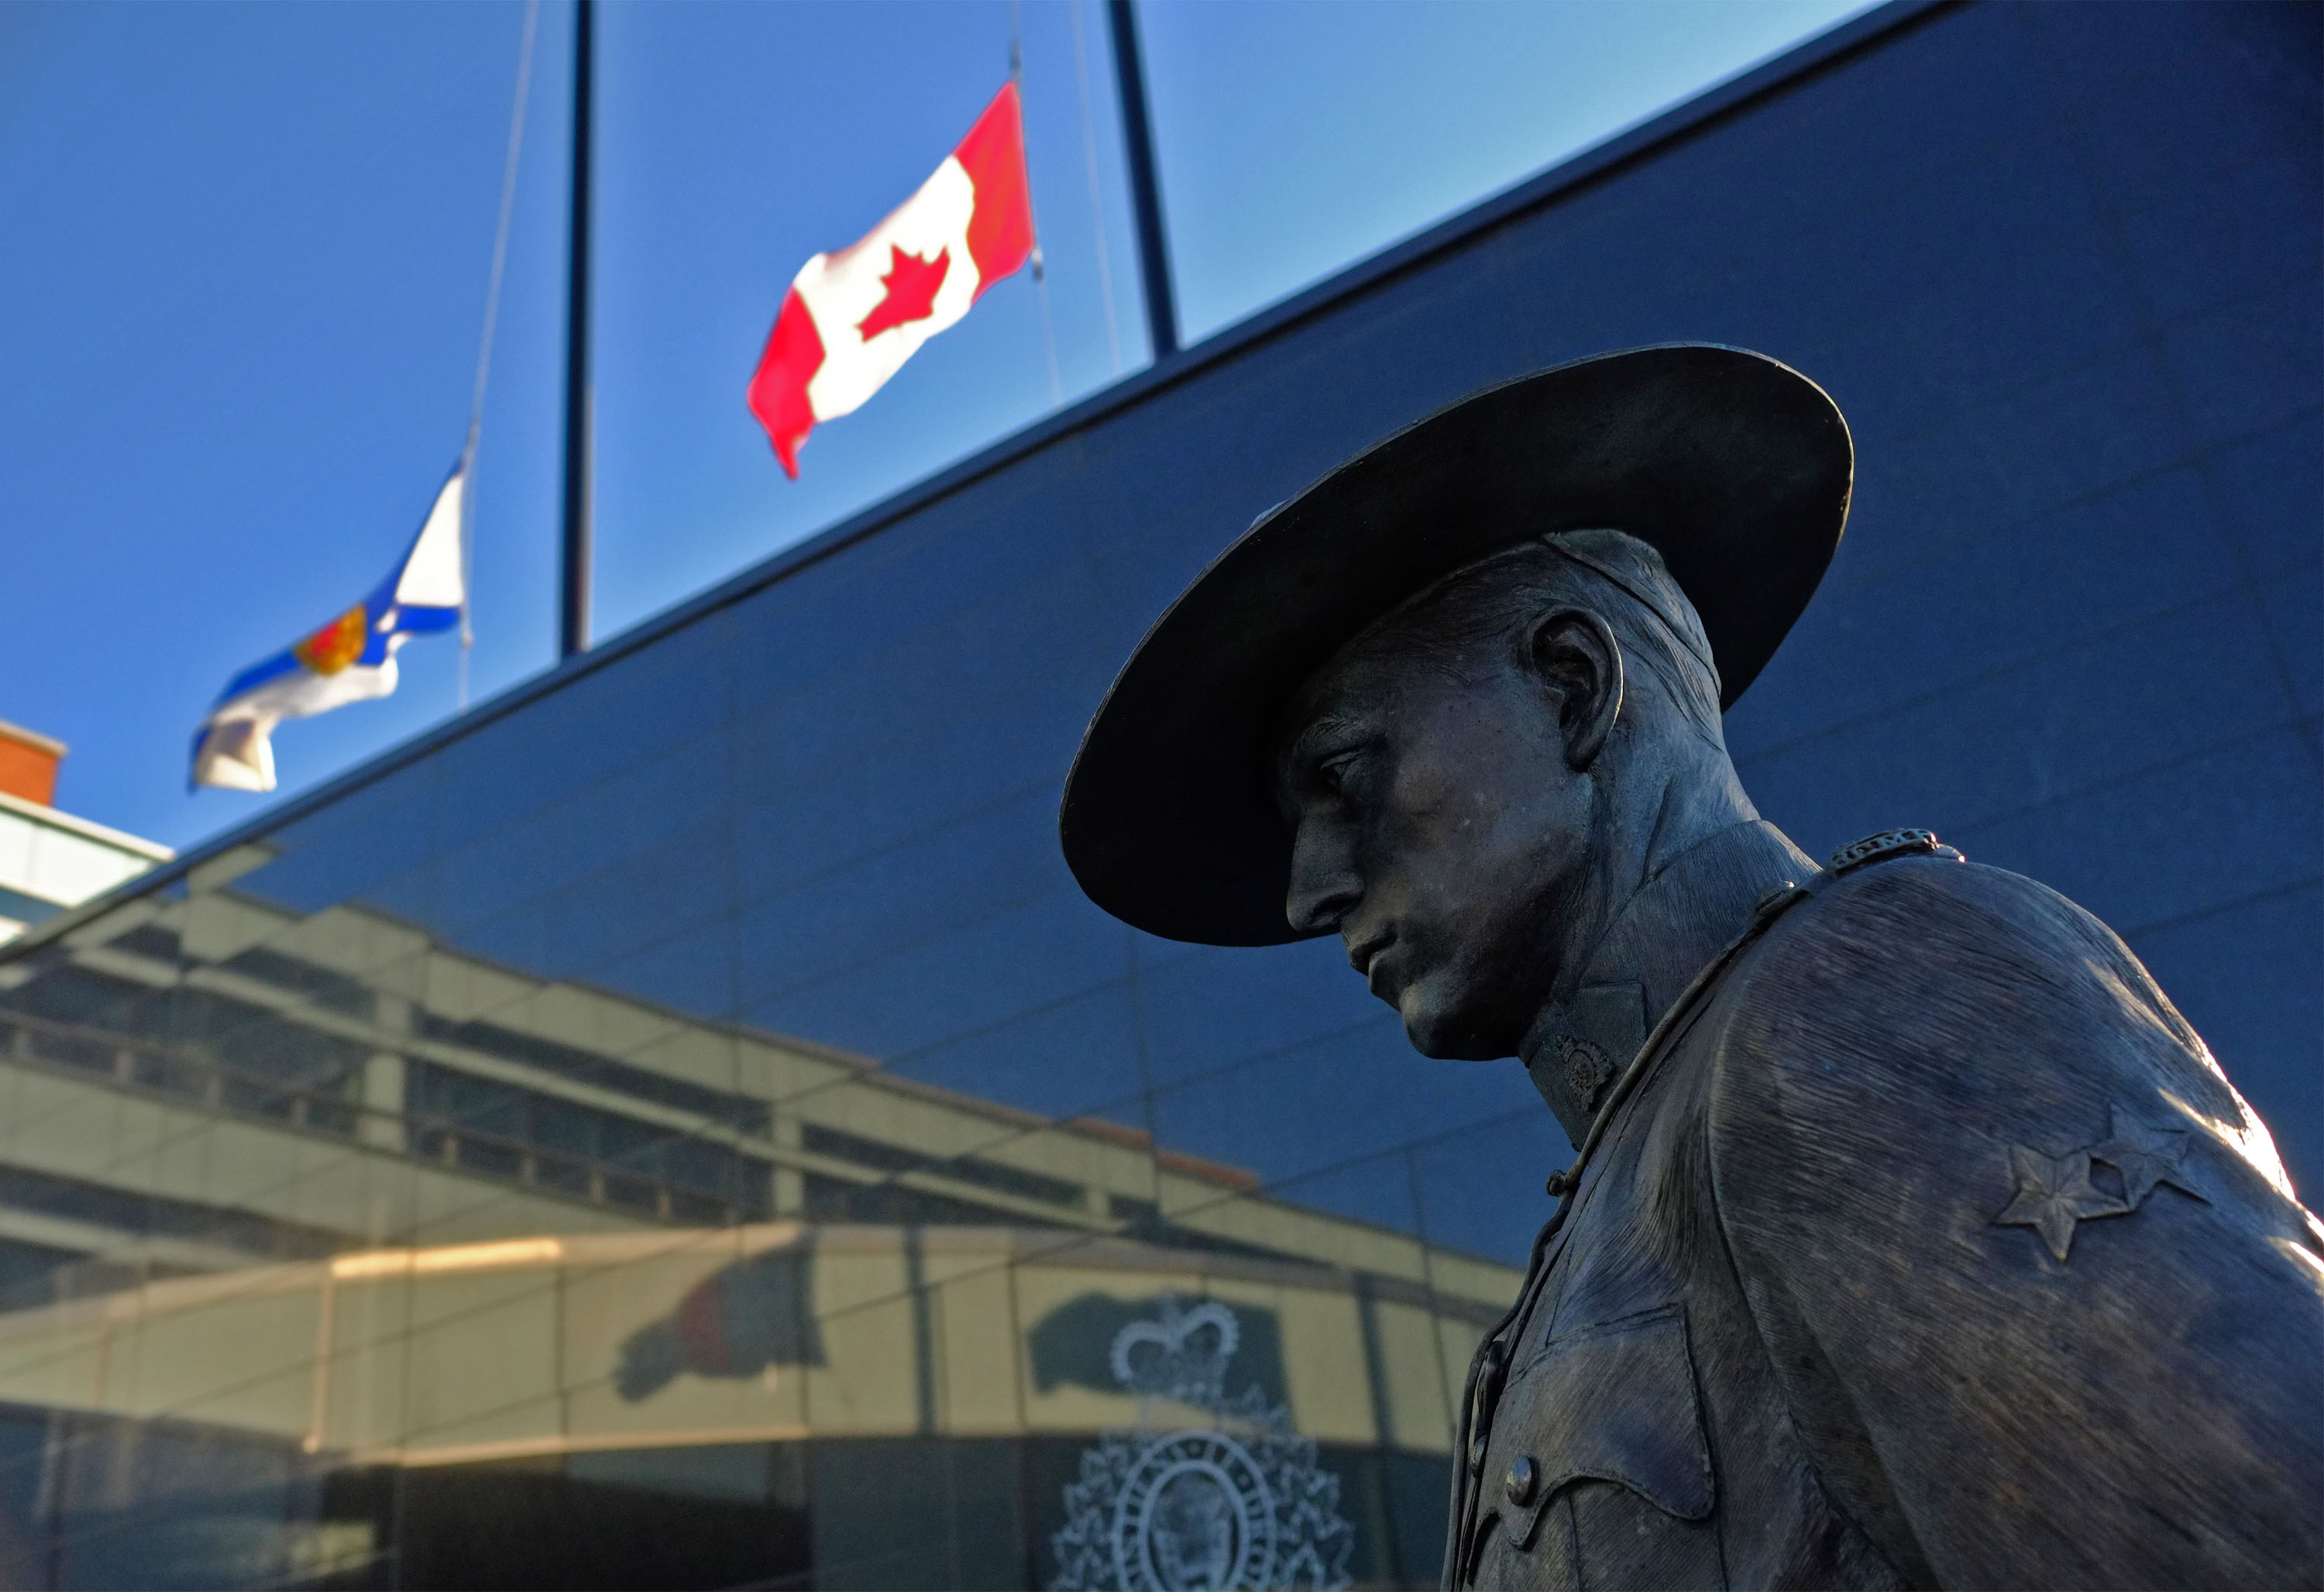 Flags of Nova Scotia and Canada fly at half-staff outside the Nova Scotia Royal Canadian Mounted Police (RCMP) headquarters in Dartmouth, Nova Scotia, Canada, on April 19, 2020, after a shooting rampage left at least 10 dead. (TIM KROCHAK/AFP via Getty Images)